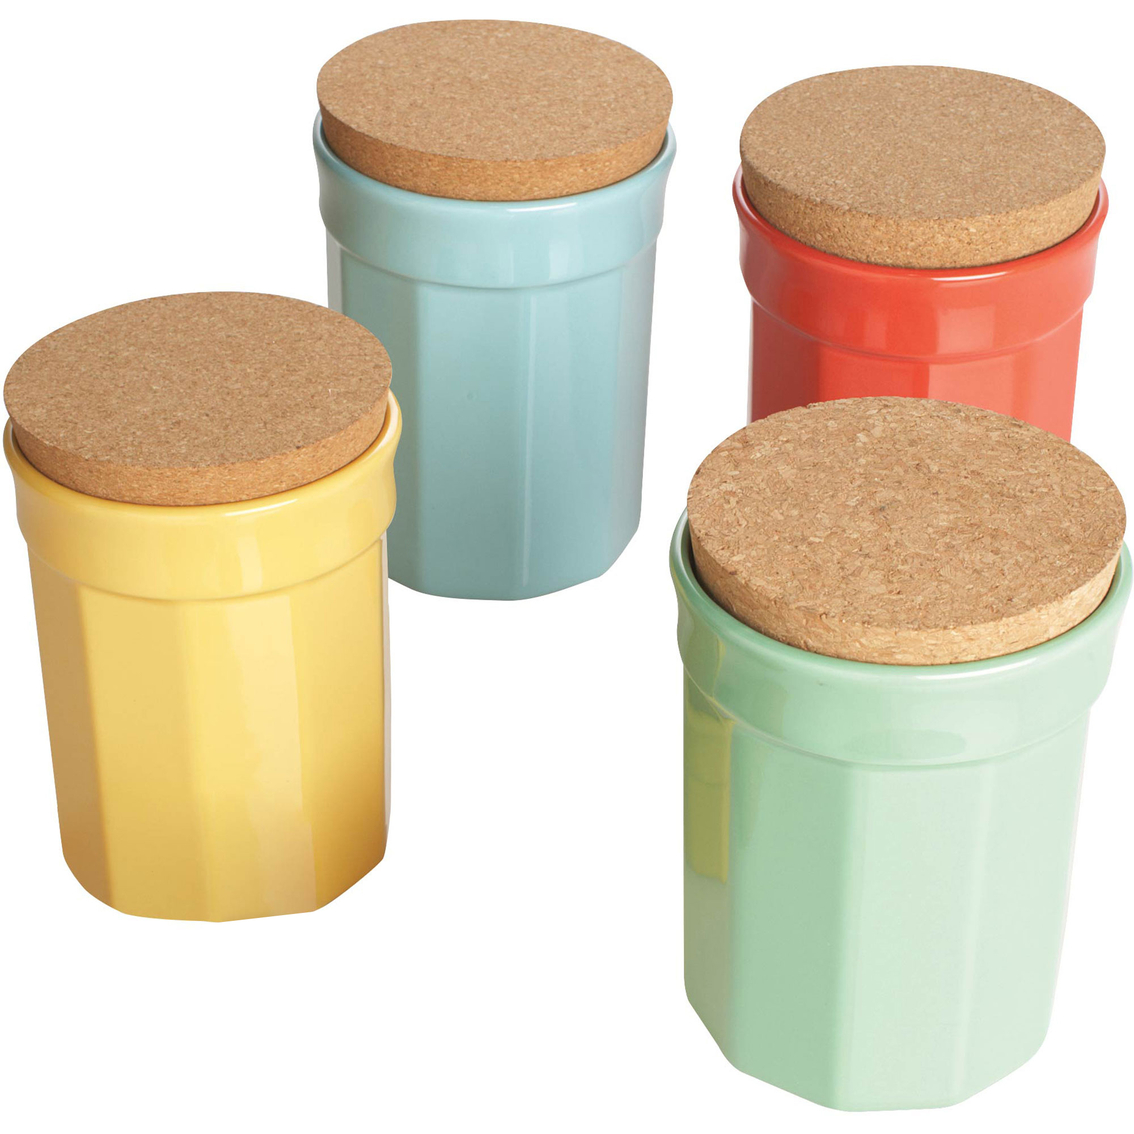 martha stewart collection crock ceramic food storage martha stewart knockoff canisters favecrafts com